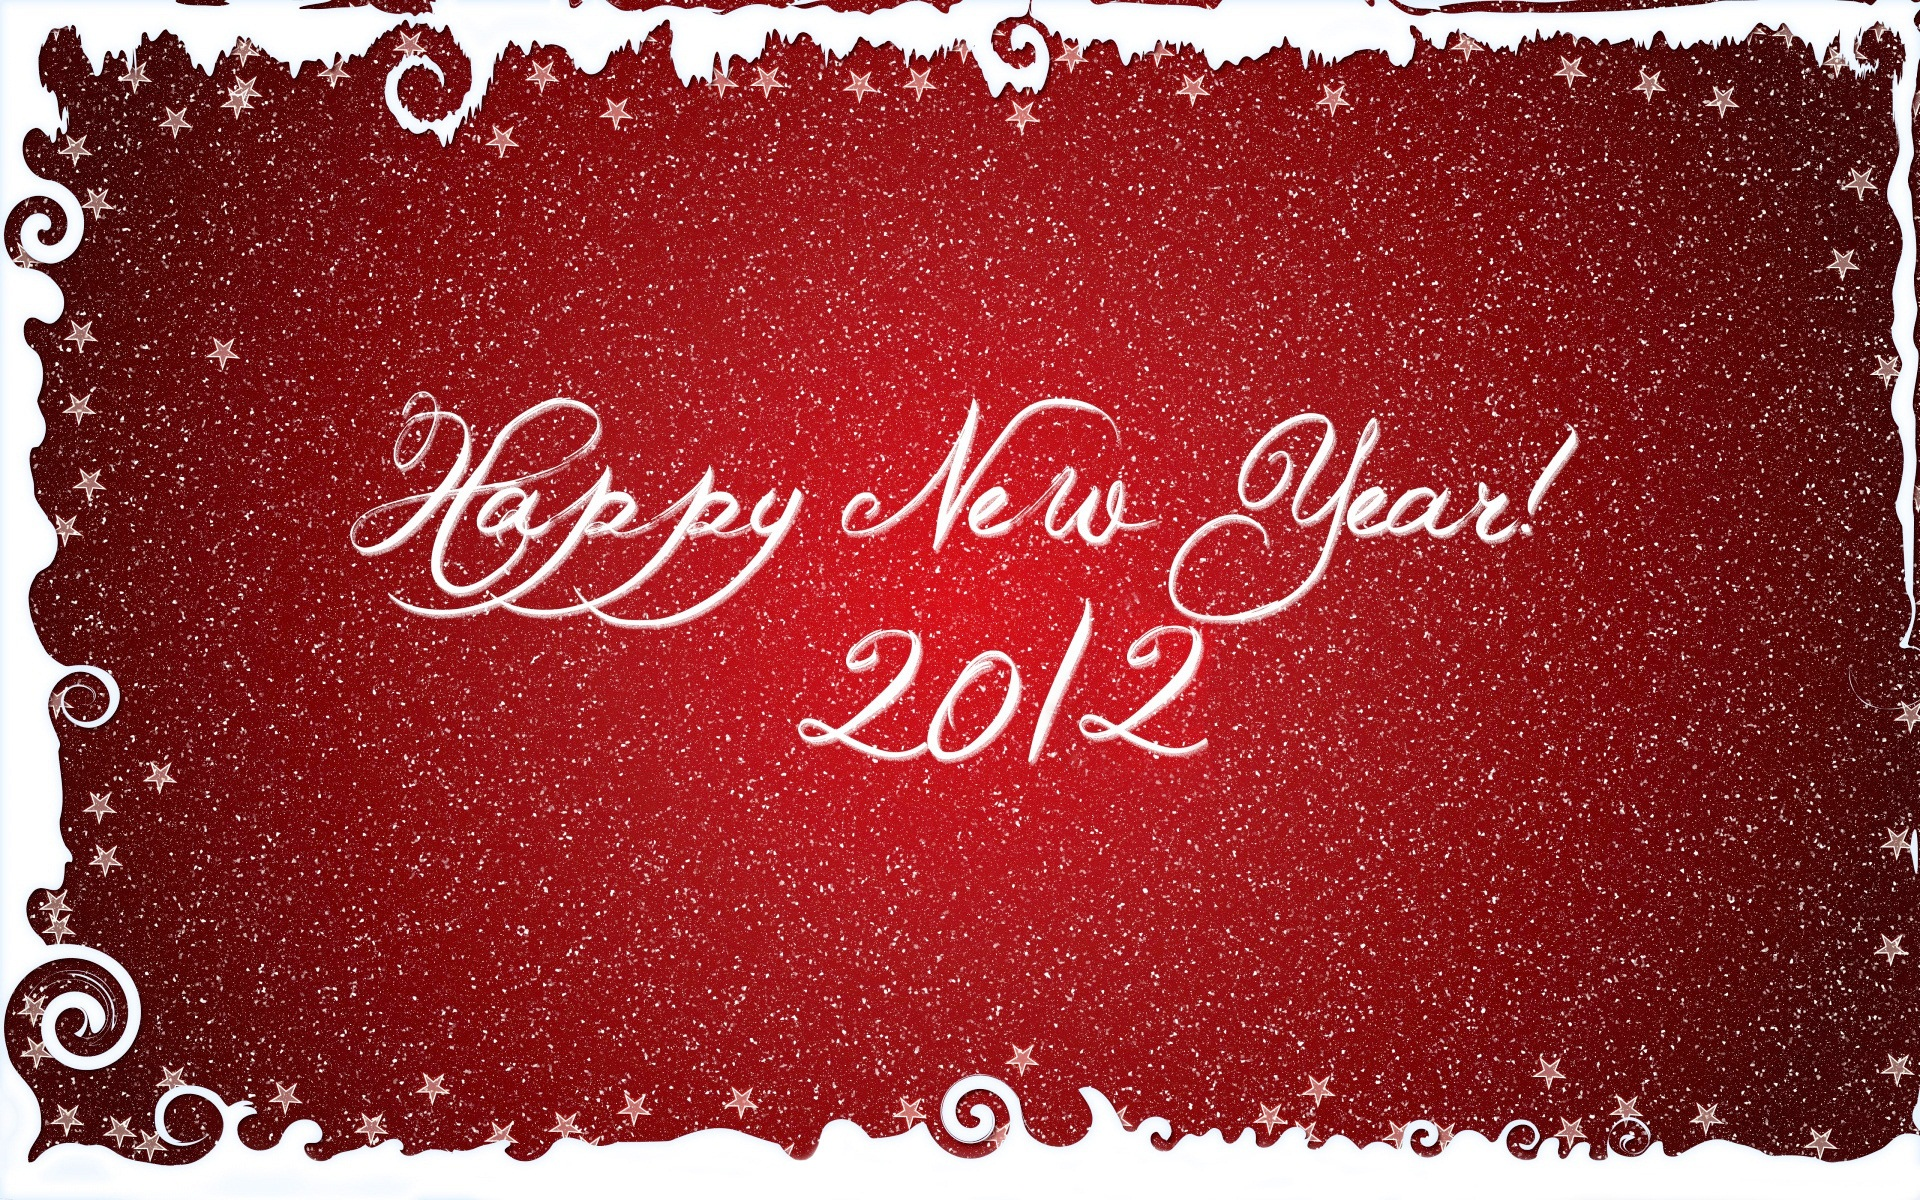 Happy New Year 2012 72.69 Kb